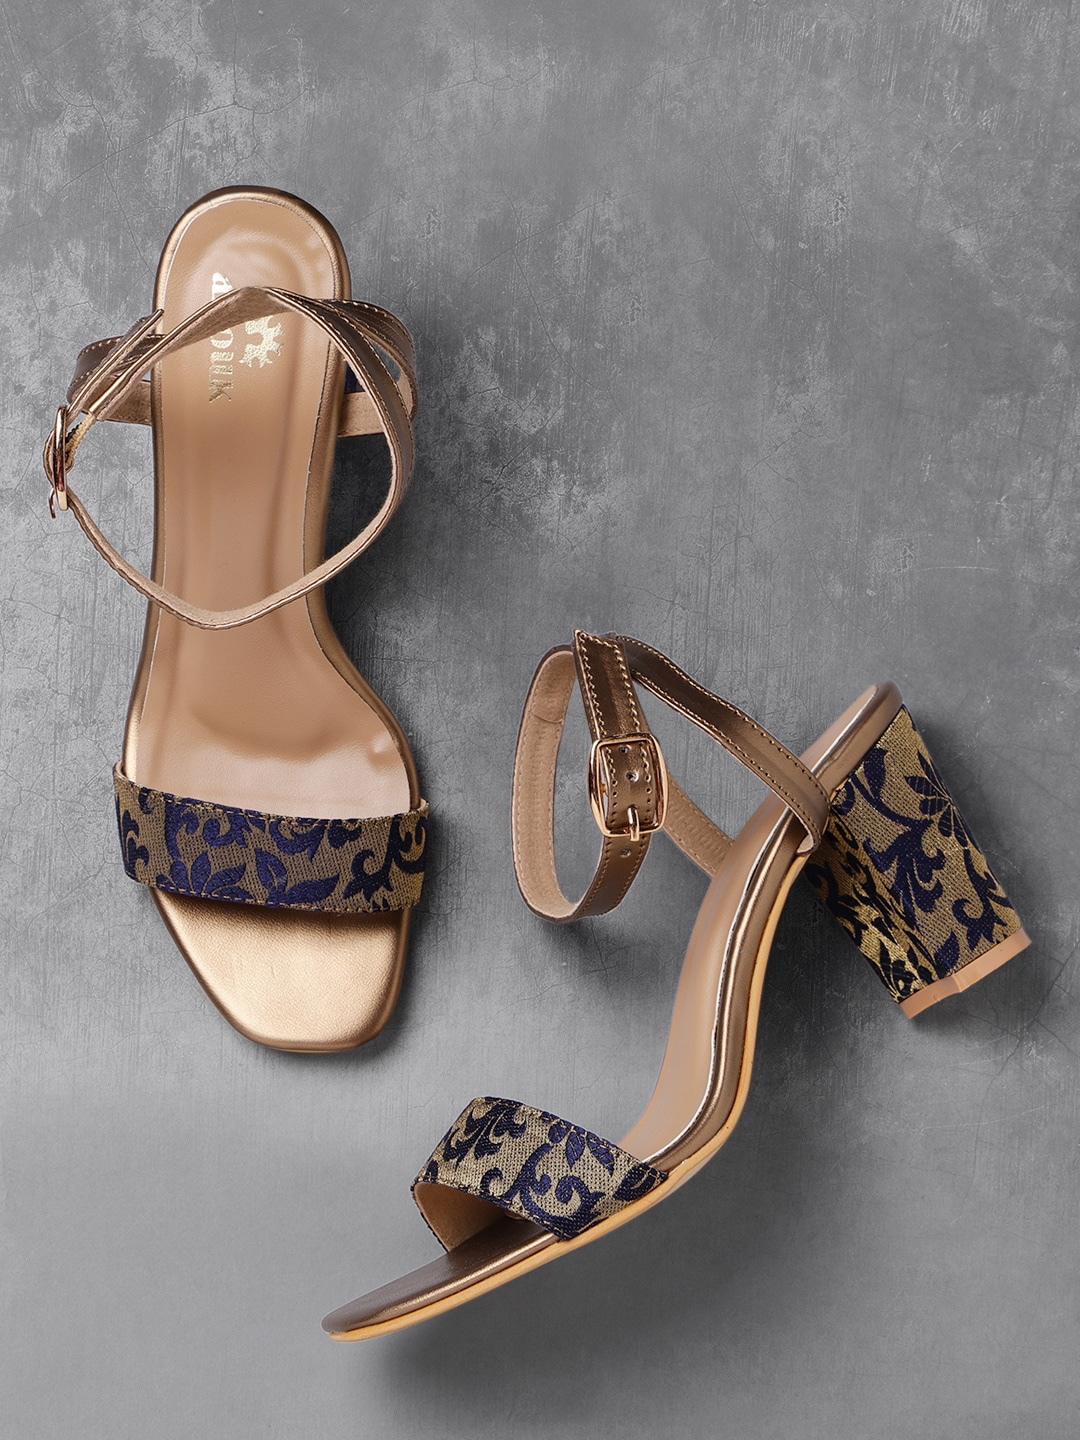 Navy & Gold-Toned Woven Design Sandals